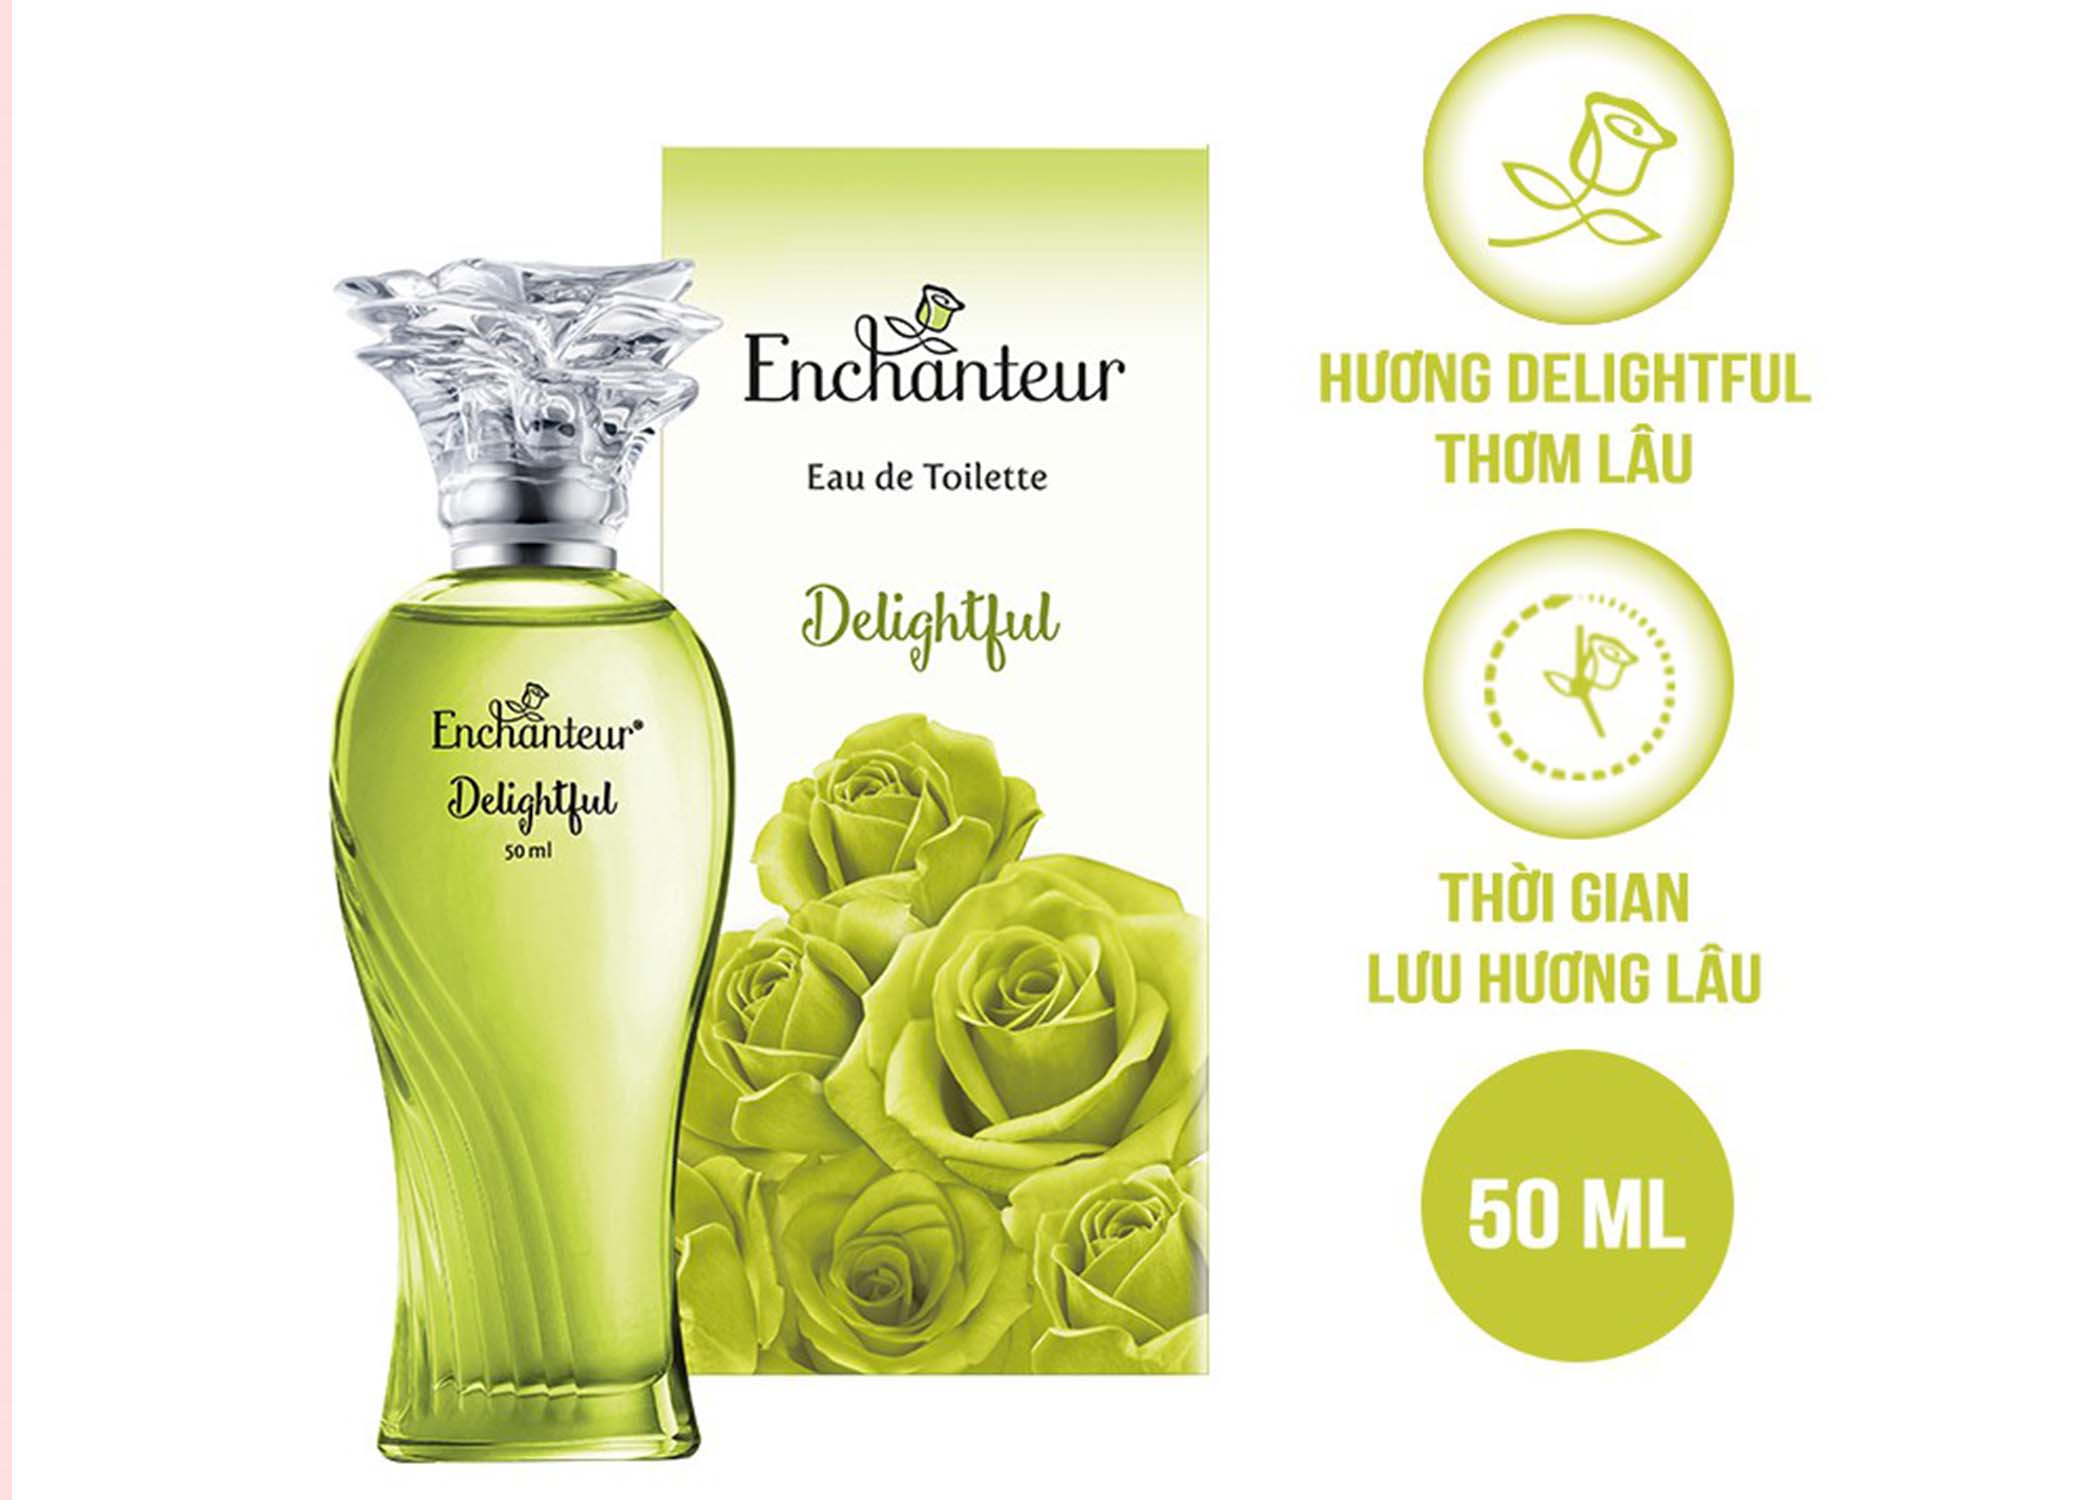 Nuoc-hoa-cao-cap-Enchanteur-Charming-Sensation-Delightful-50ml